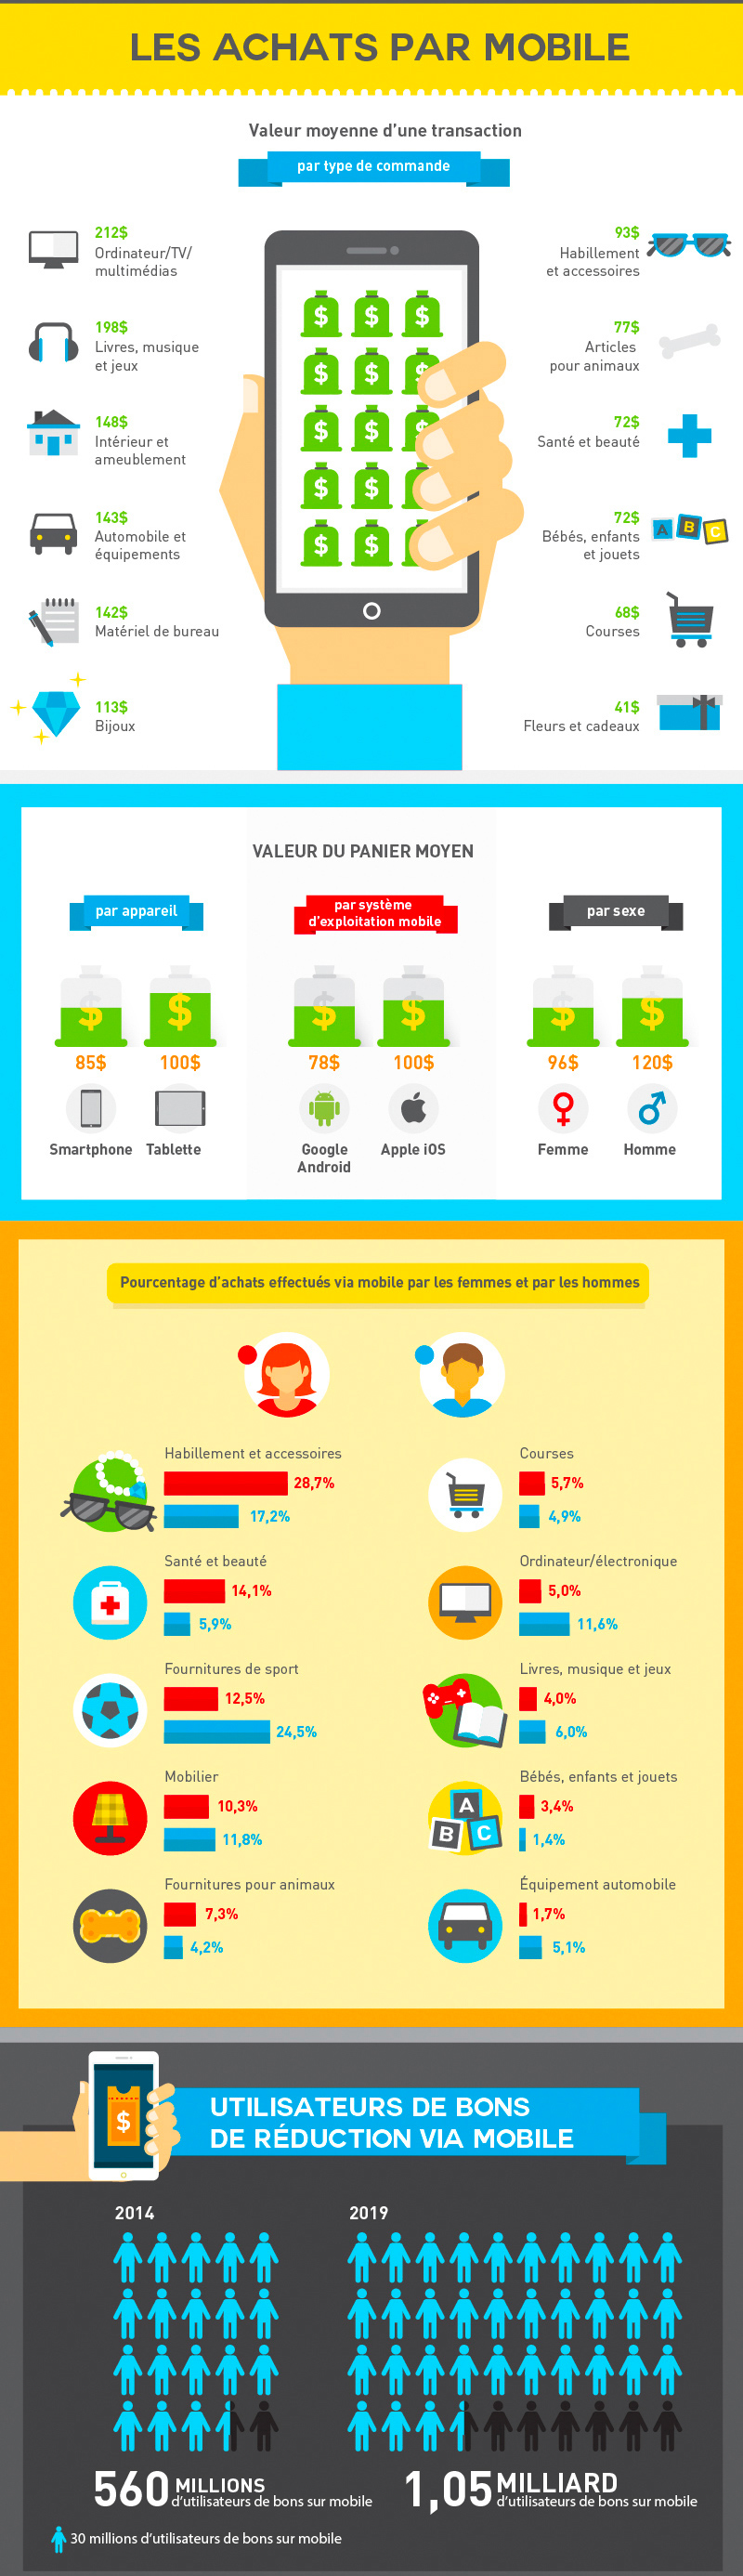 mcommerce-infographie-2